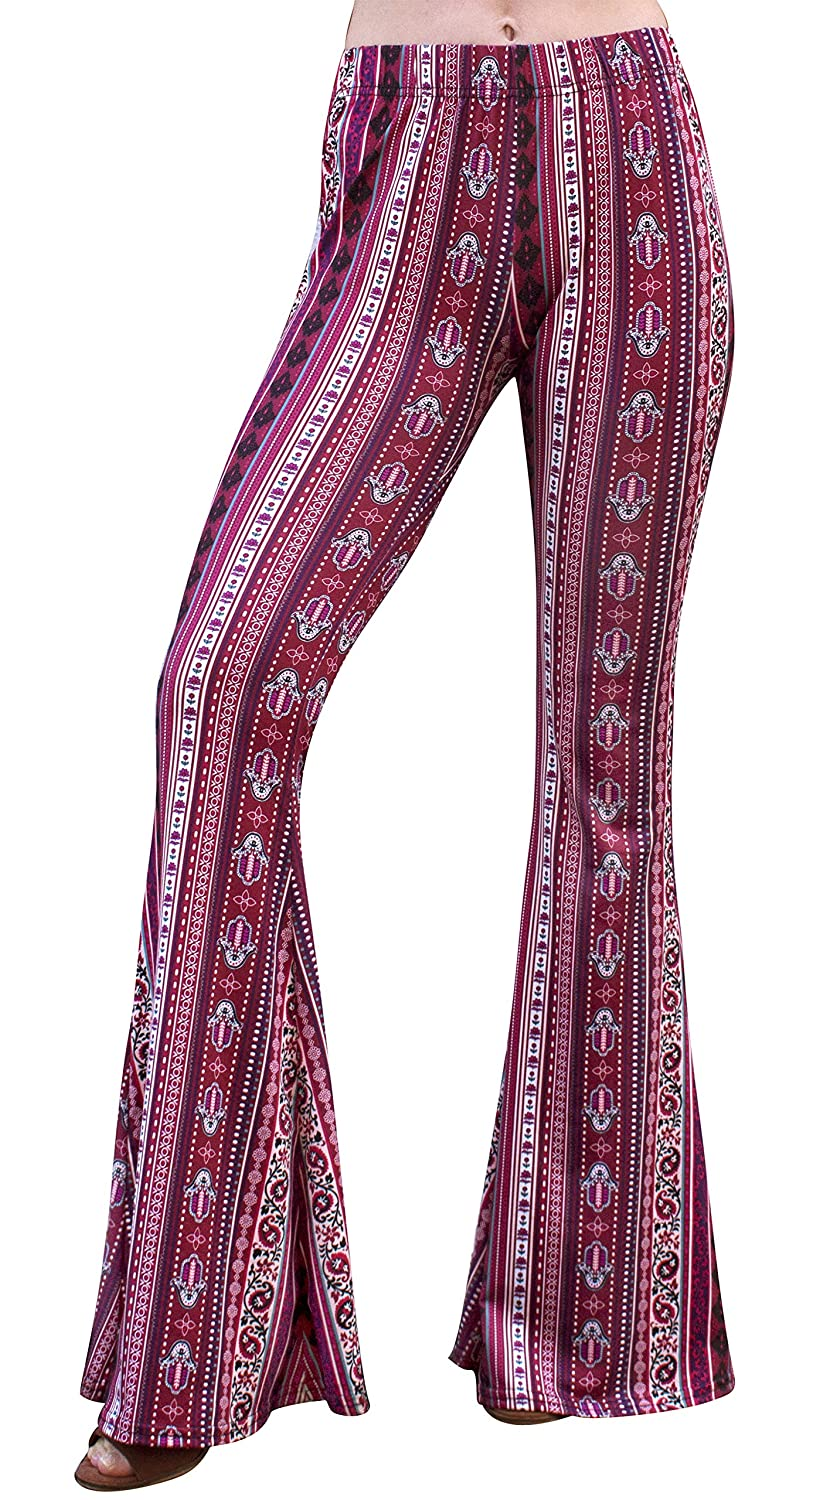 3a3916ff7383ce Daisy Del Sol High Waist Gypsy Comfy Yoga Ethnic Tribal Stretch Palazzo 70s  Bell Bottom Fit to Flare Pants at Amazon Women's Clothing store: